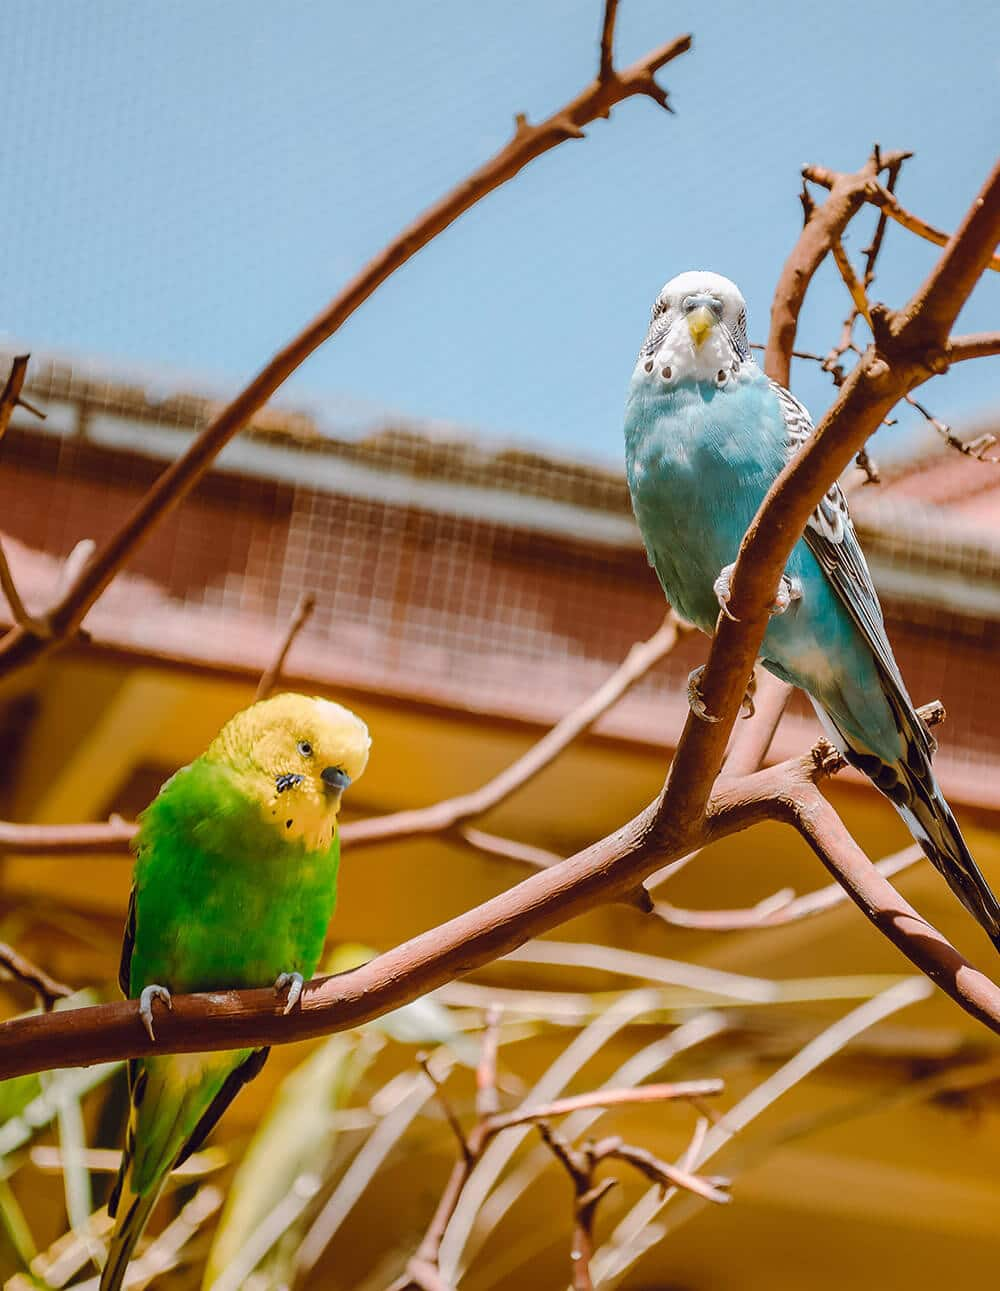 Two budgie. One yellow and the other one blue. Both stay on a branch and look's happy.